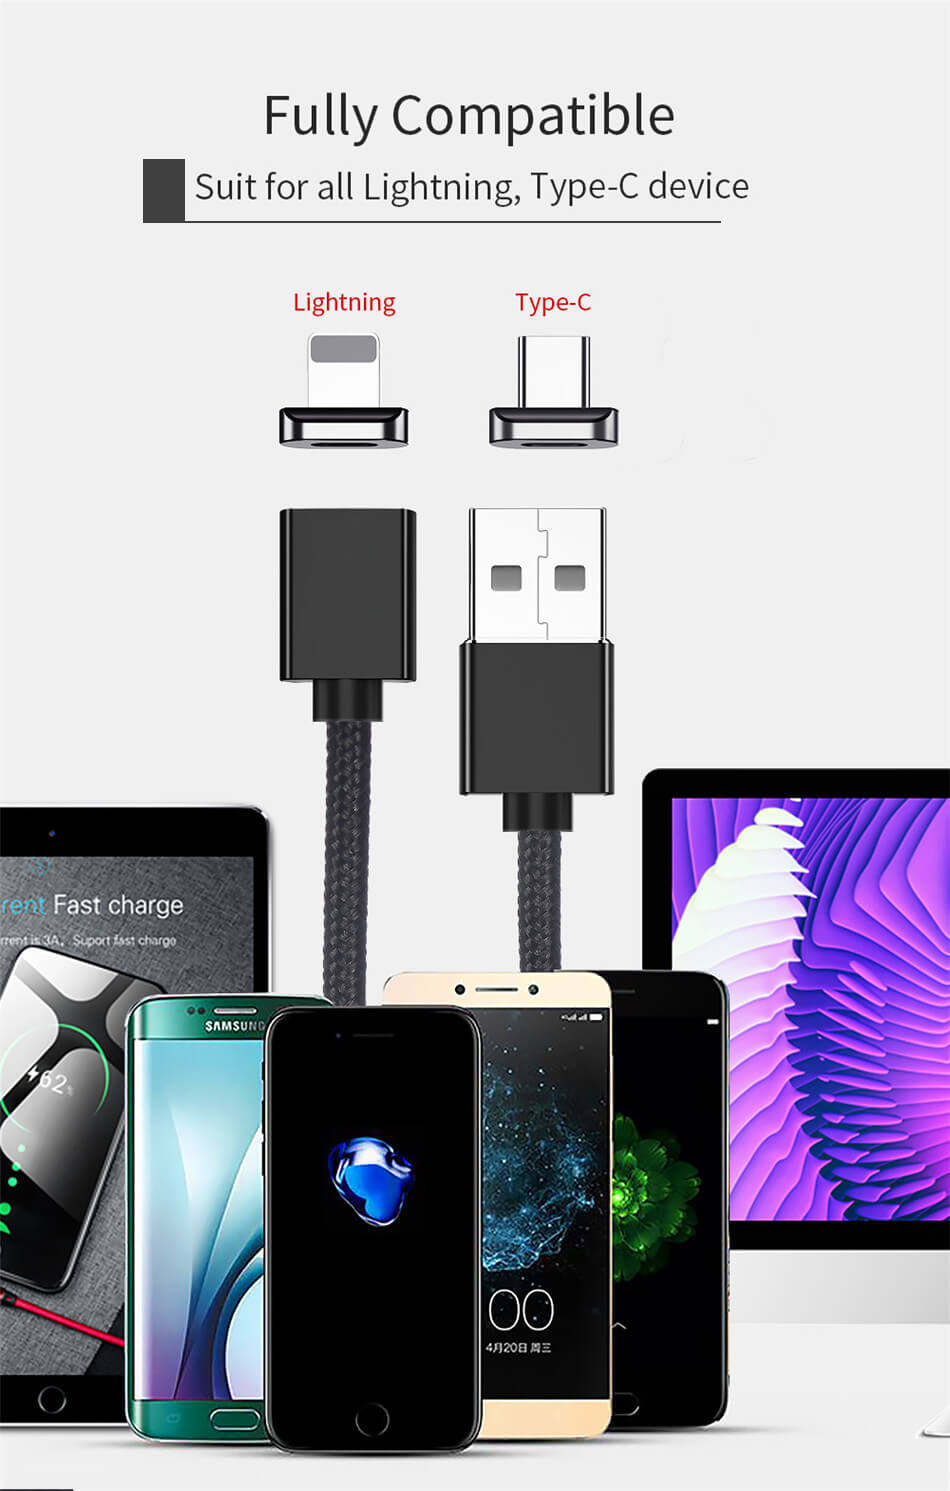 3 3e247e93 54a8 4fec 85cb caed38cf2479 - ***PACK OF 3*** Magnetic USB Cable [Fast Charging & Transmission] (6.5FT)